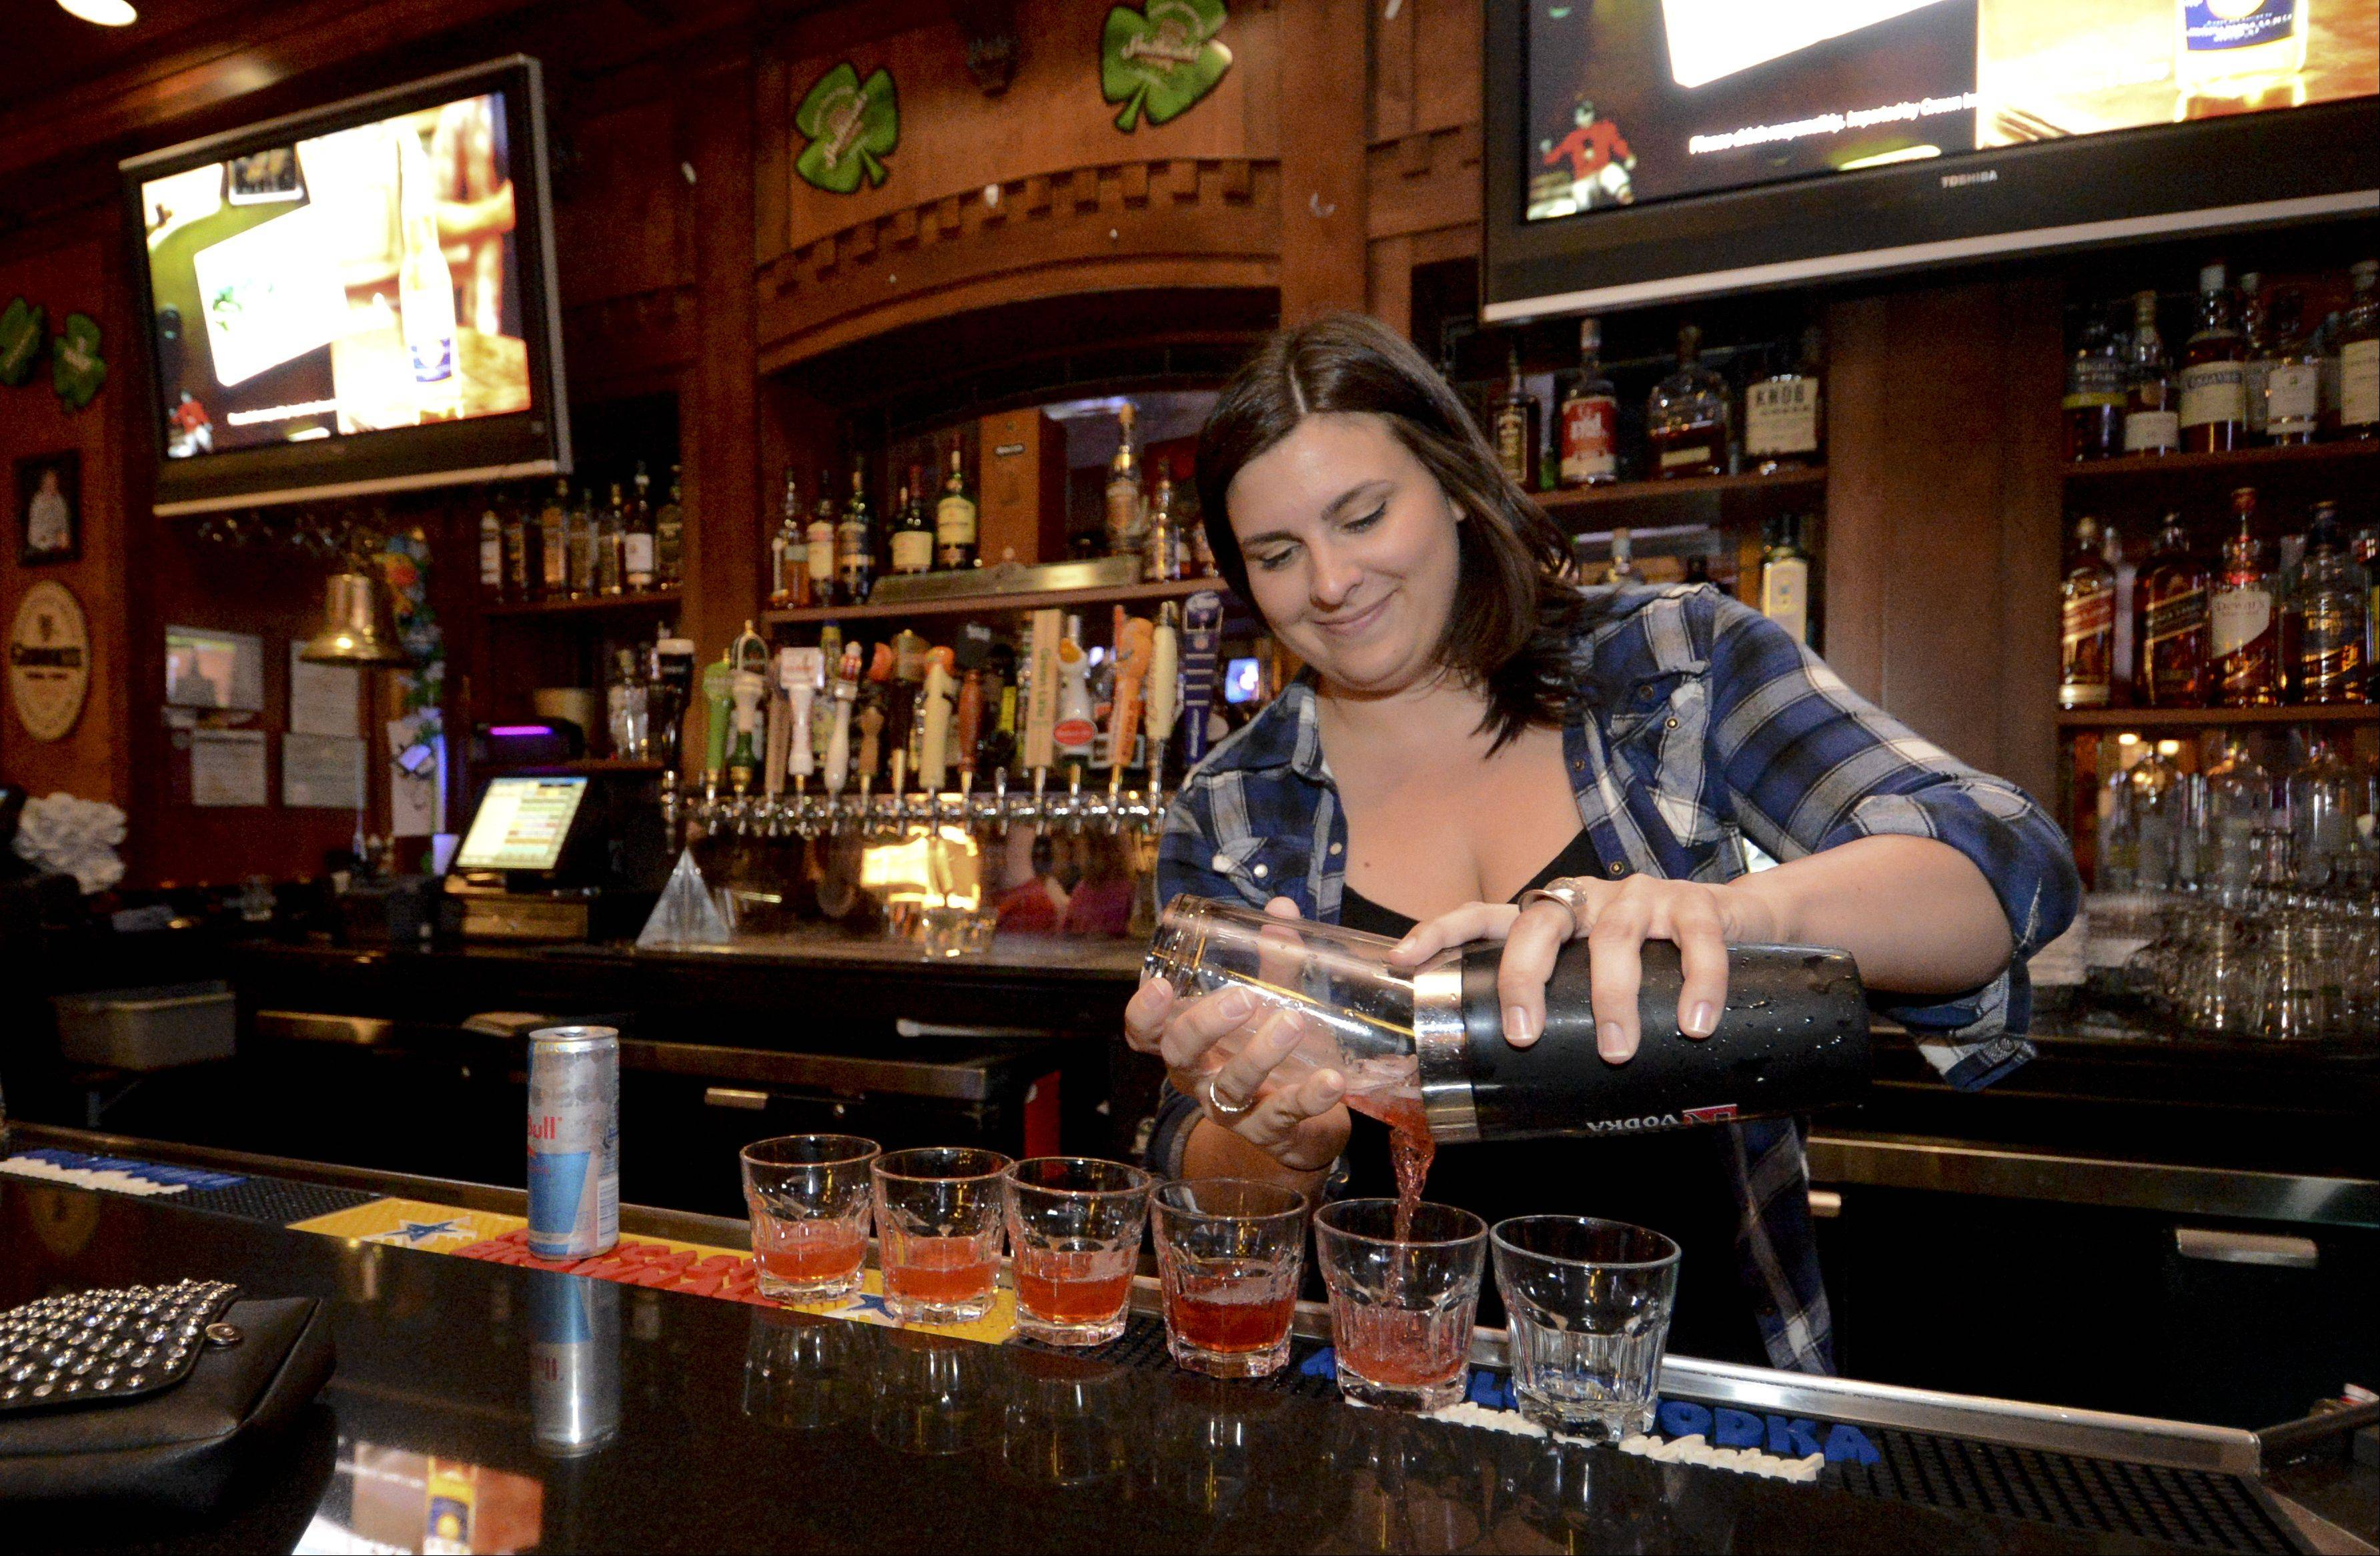 Taylor Poulos pours drinks while tending bar at Tommy Nevin's Pub in Naperville.